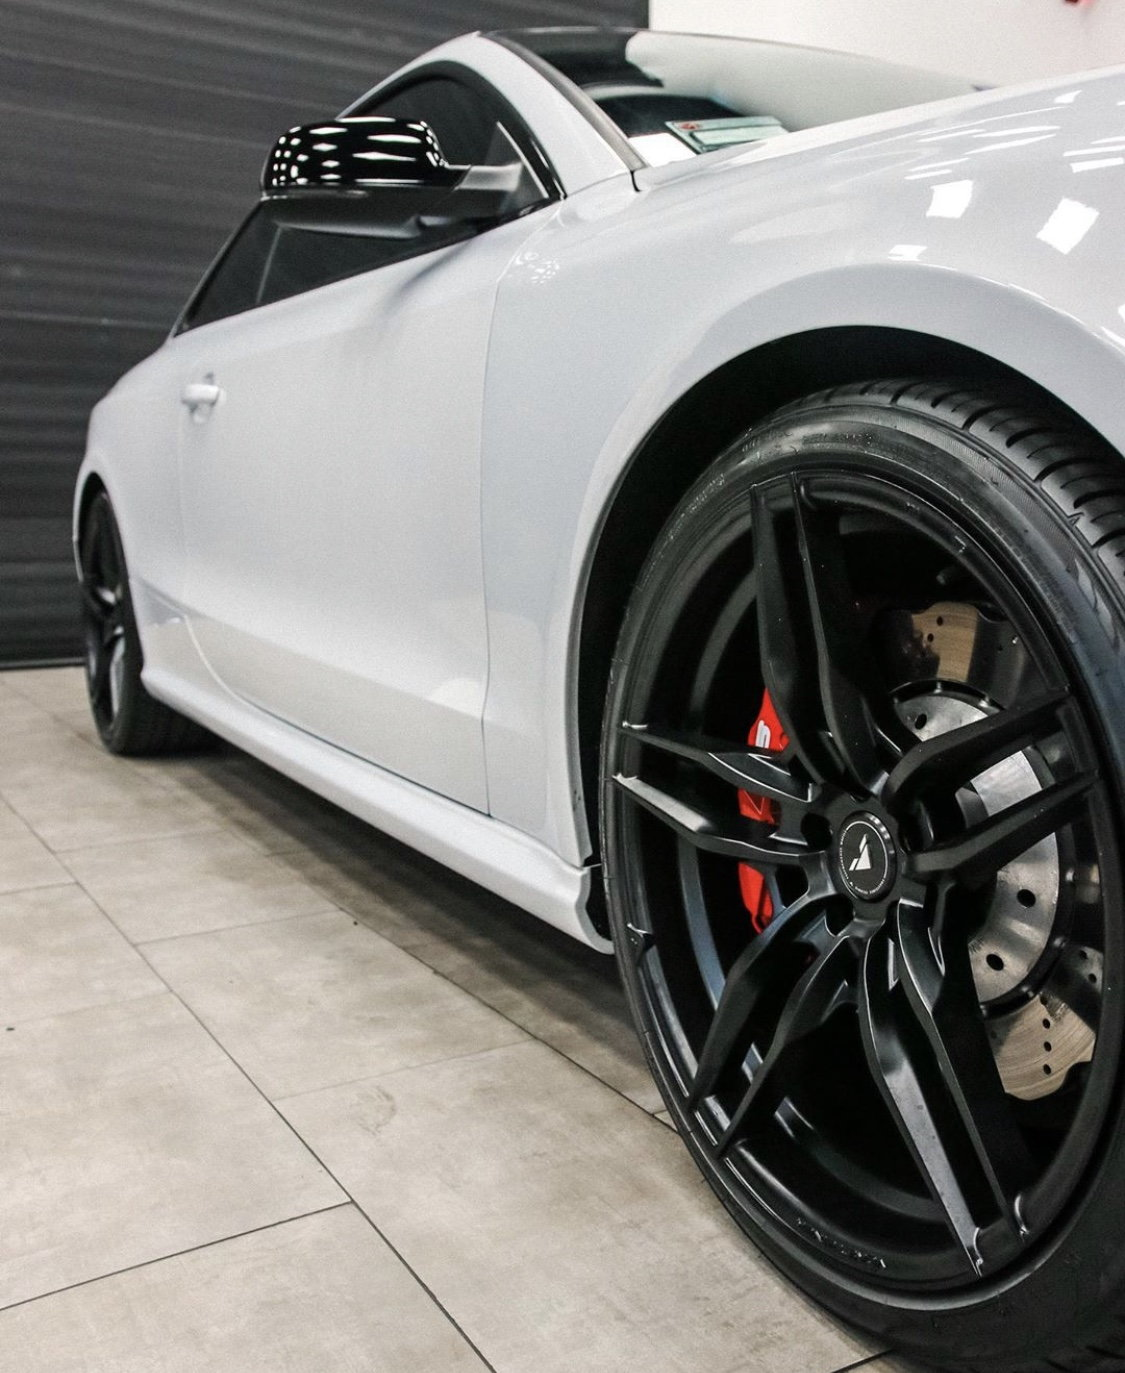 Audi Other 2014 RS5 Suzuka Grey $36,000